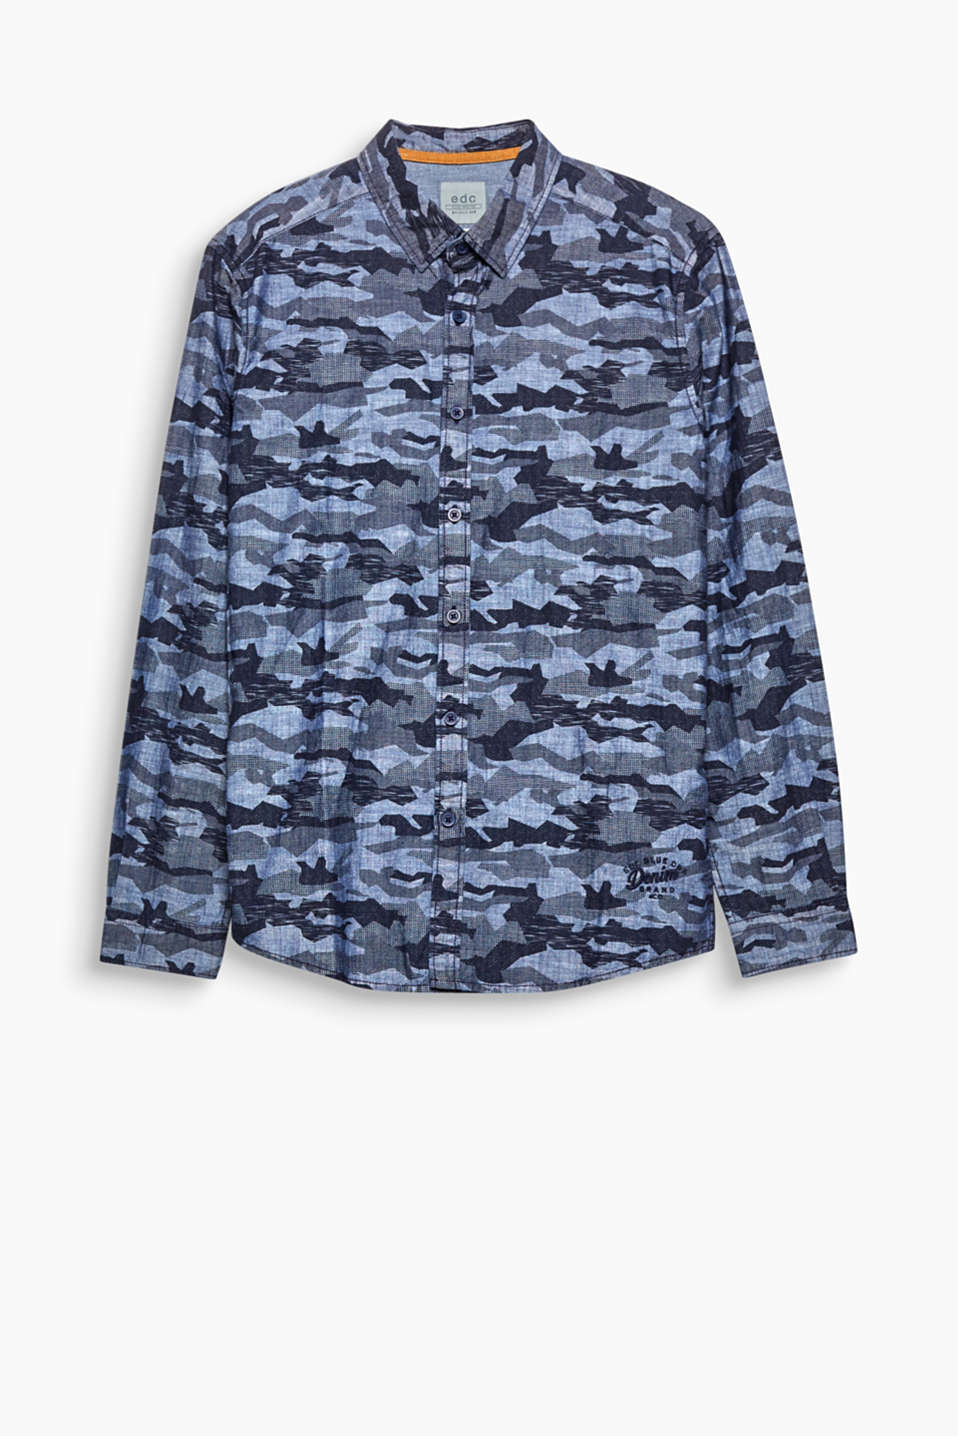 Camouflage and chambray! The combination makes this shirt an urban favourite.